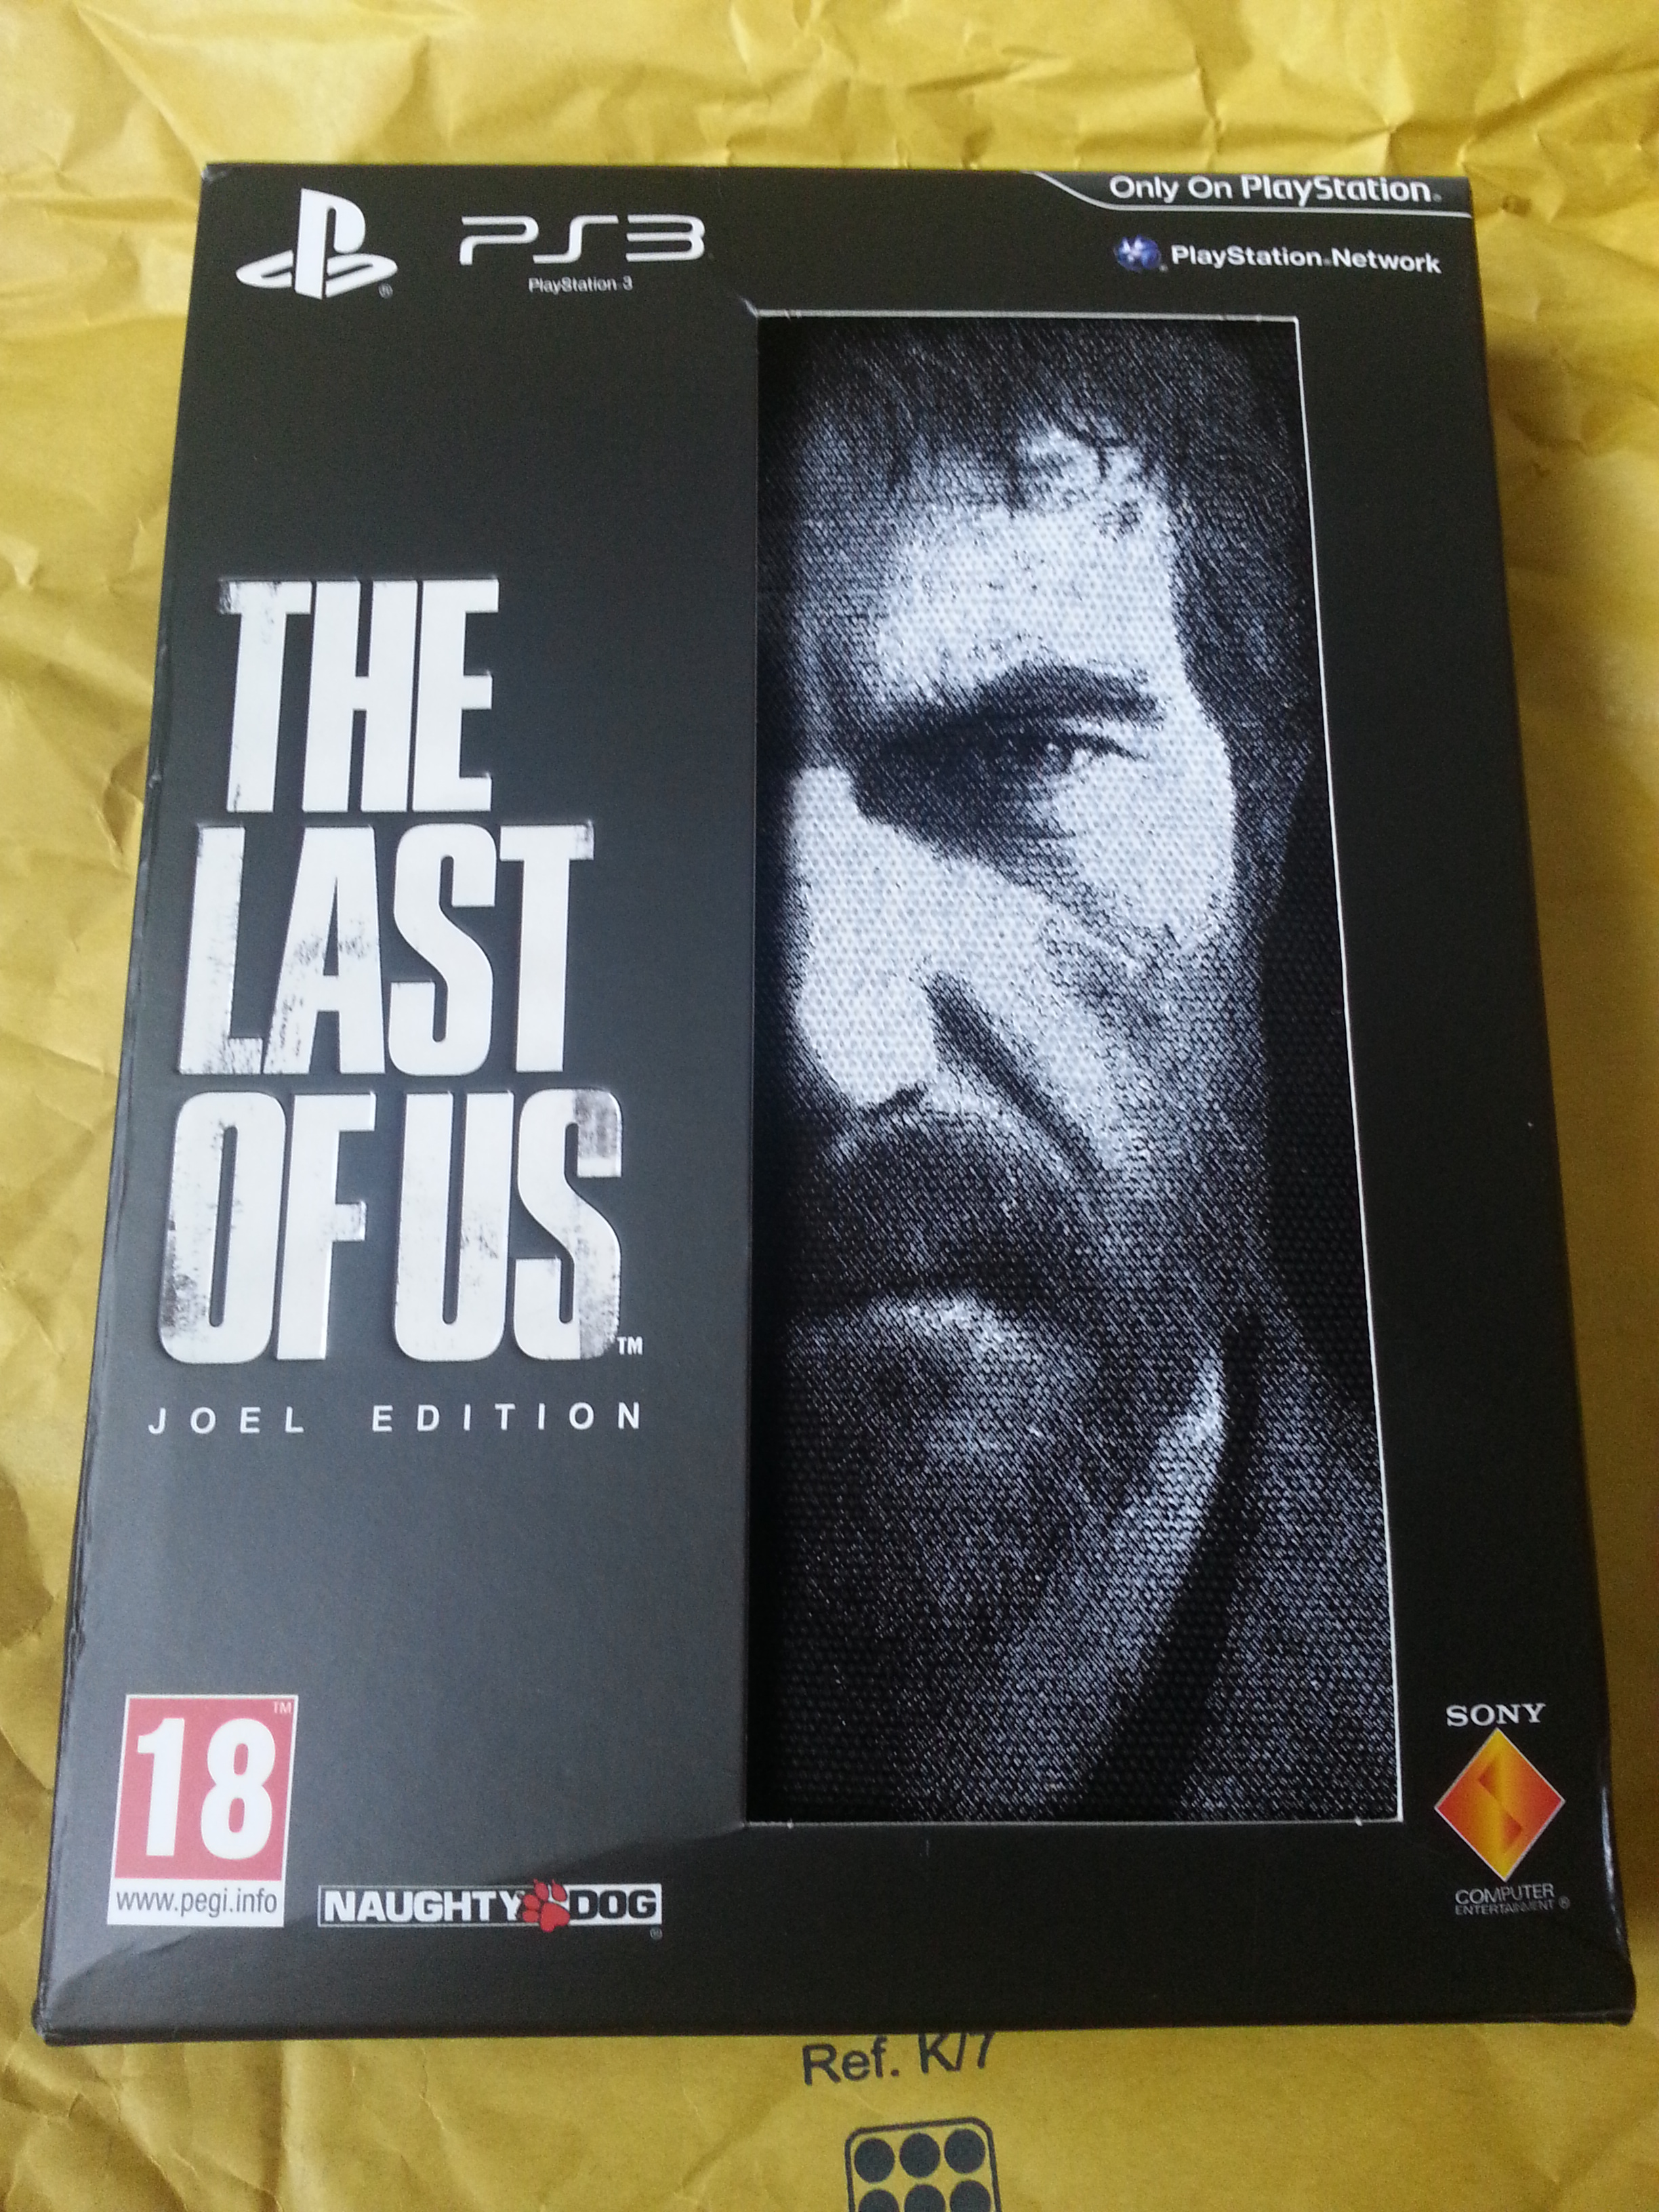 The Last of Us: Joel Edition - Unopened box